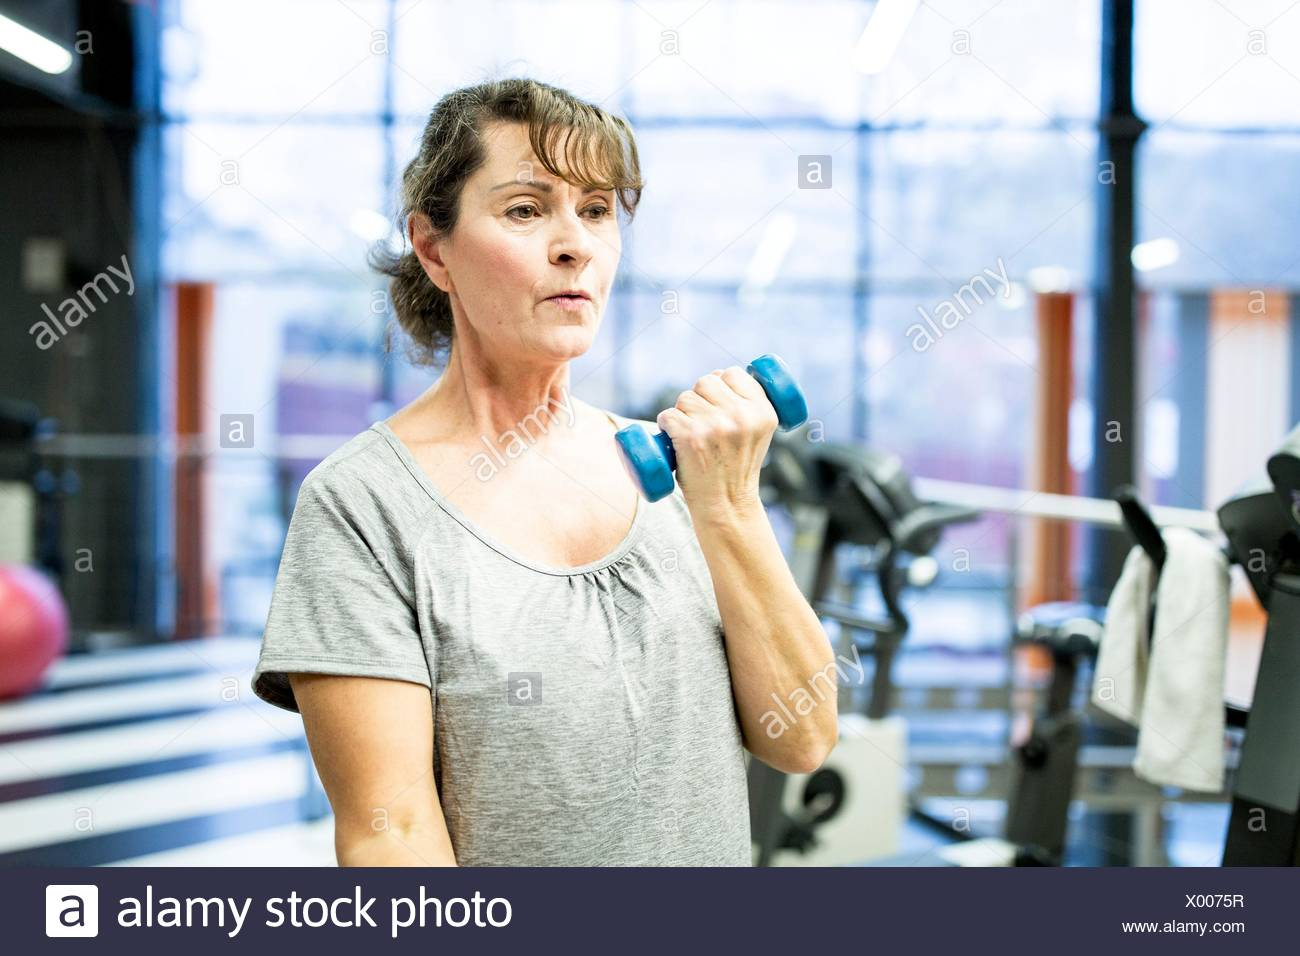 PROPERTY RELEASED. MODEL RELEASED. Senior woman holding dumbbell in gym. - Stock Image